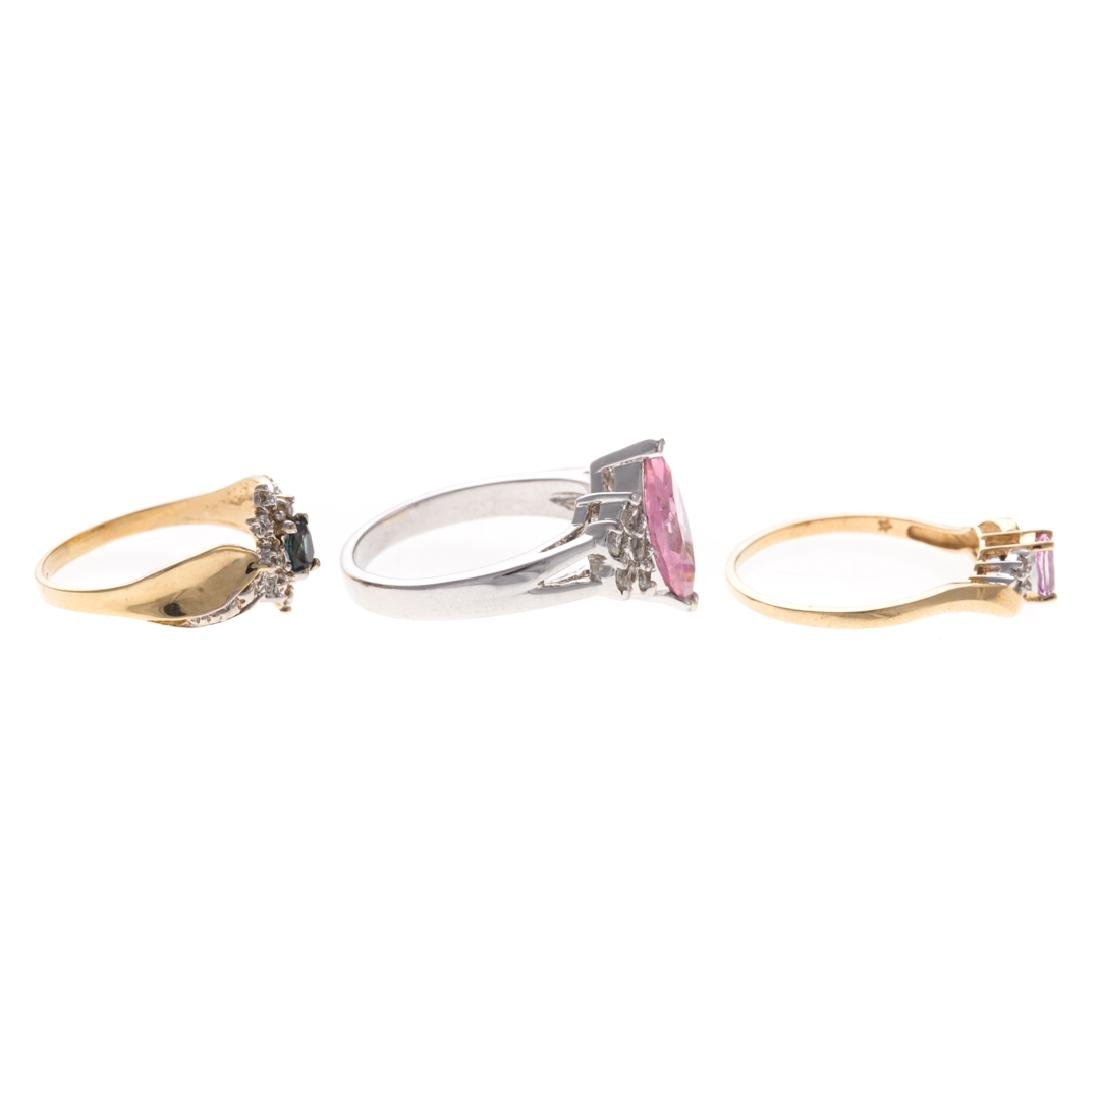 A Trio of Lady's Gem Stone Rings in Gold - 2